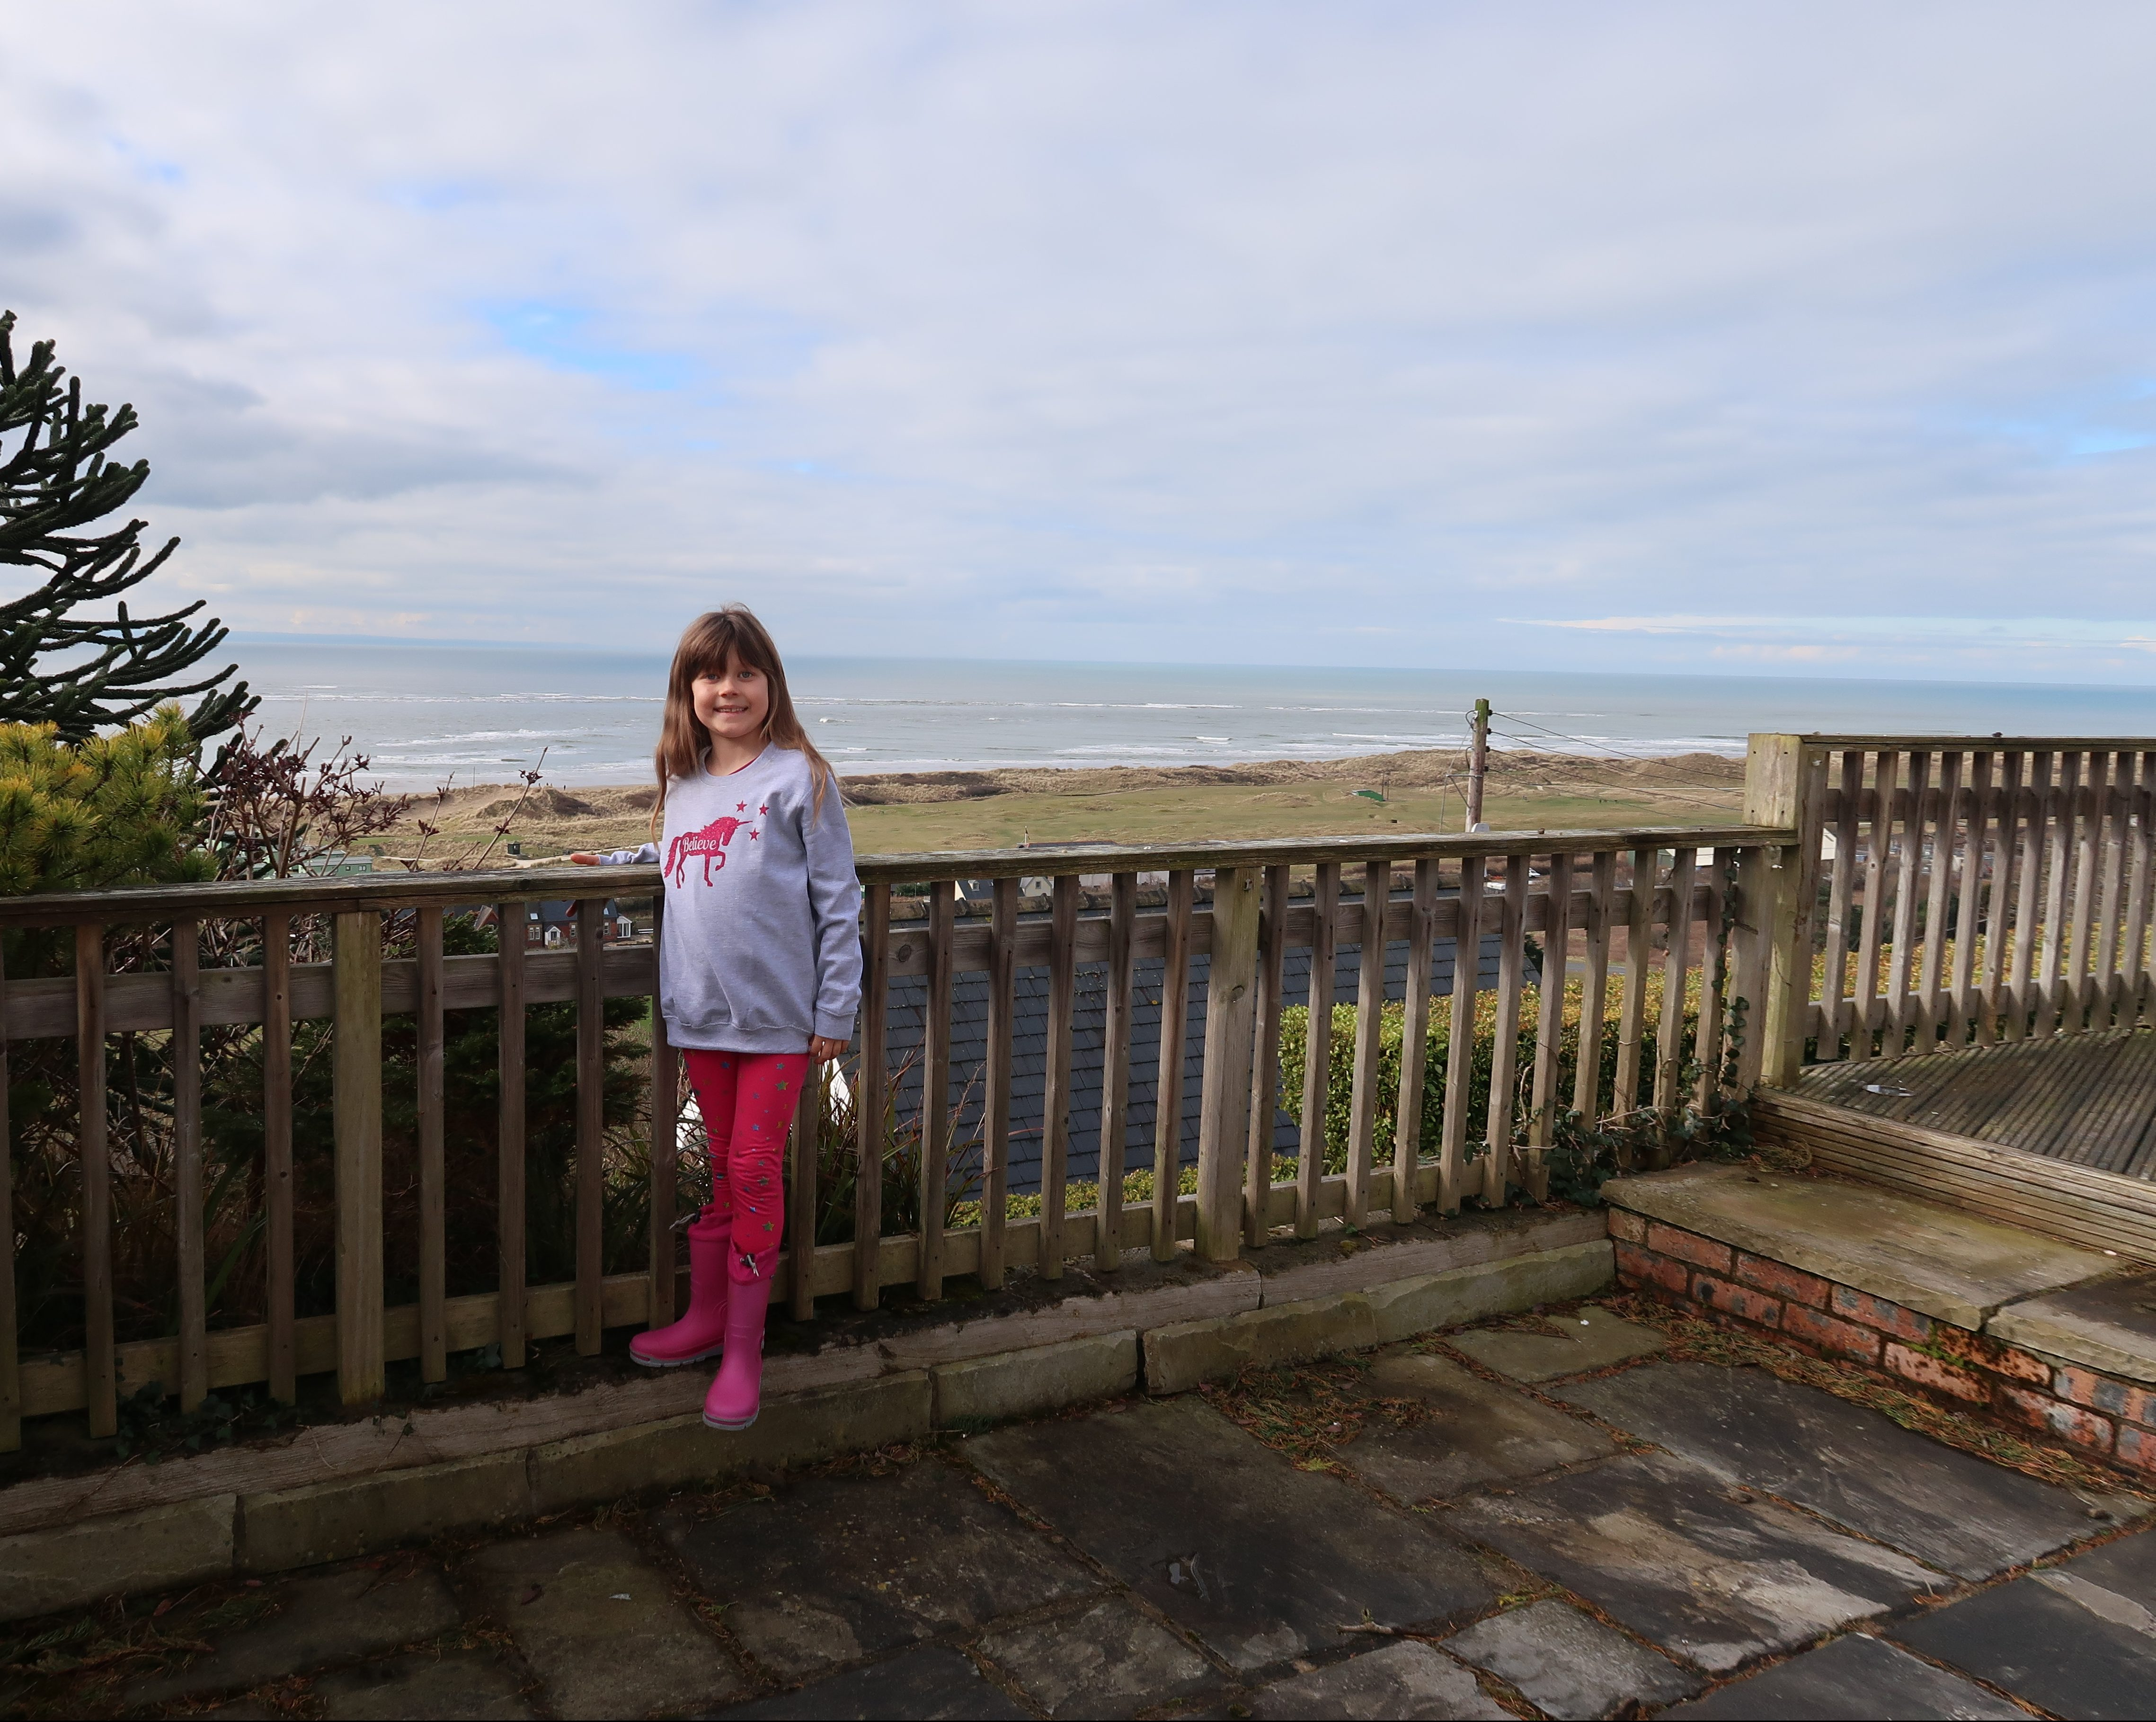 My daughter posing in a grey long sweater with a sparkly pink unicorn on, she's also wearing pink leggings and pink wellies, she's leaning against a wooden railing with a backdrop or sand dunes and sea stretching off to the horizon. The sky is full of white cloud with little patches of blue in between.